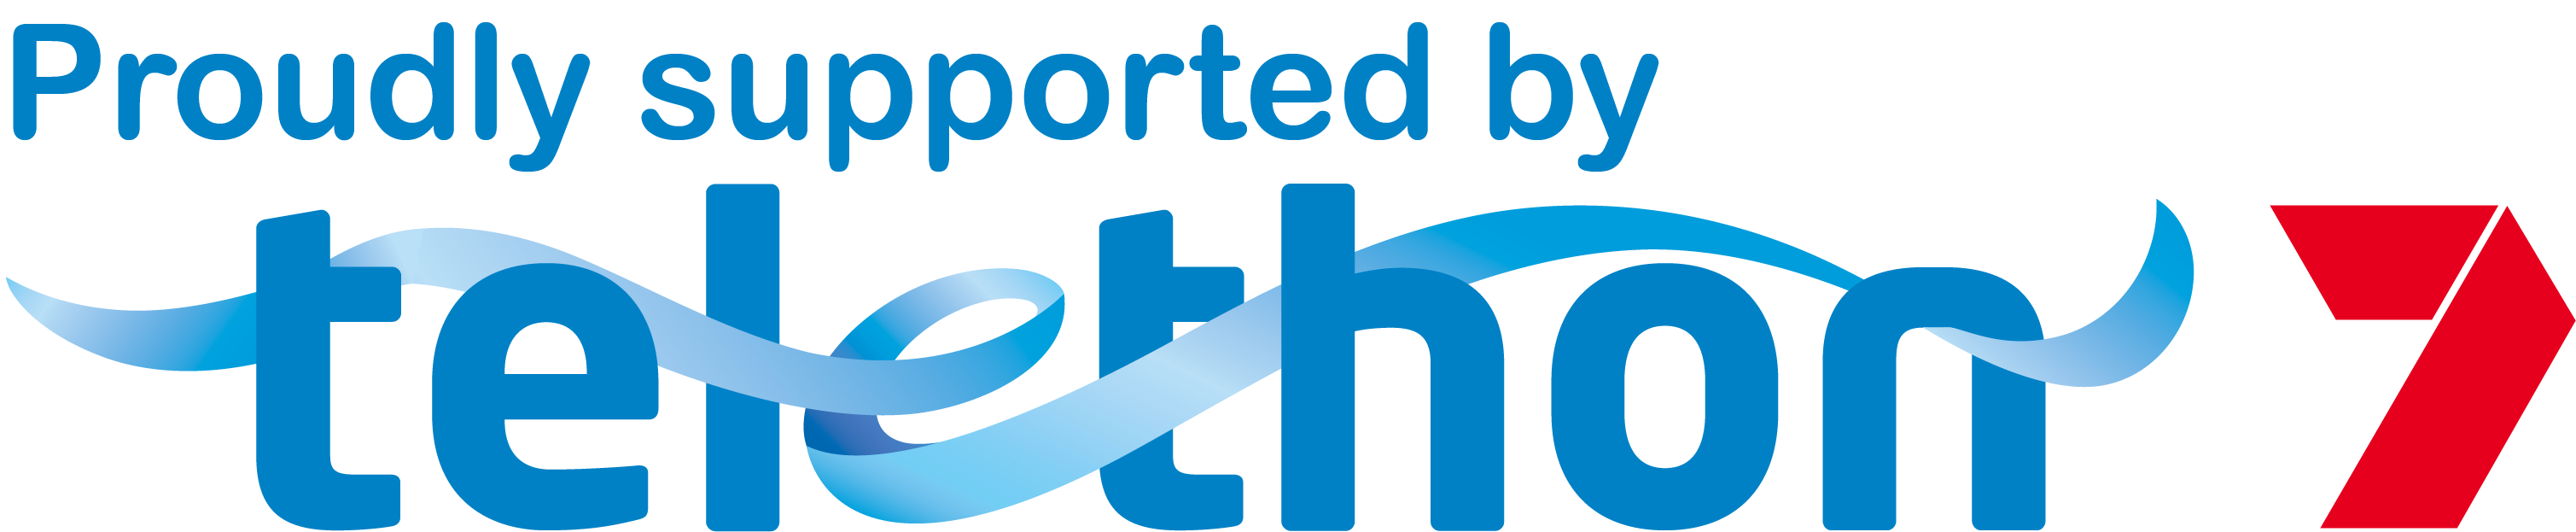 Proudly Supported by Telethon logo